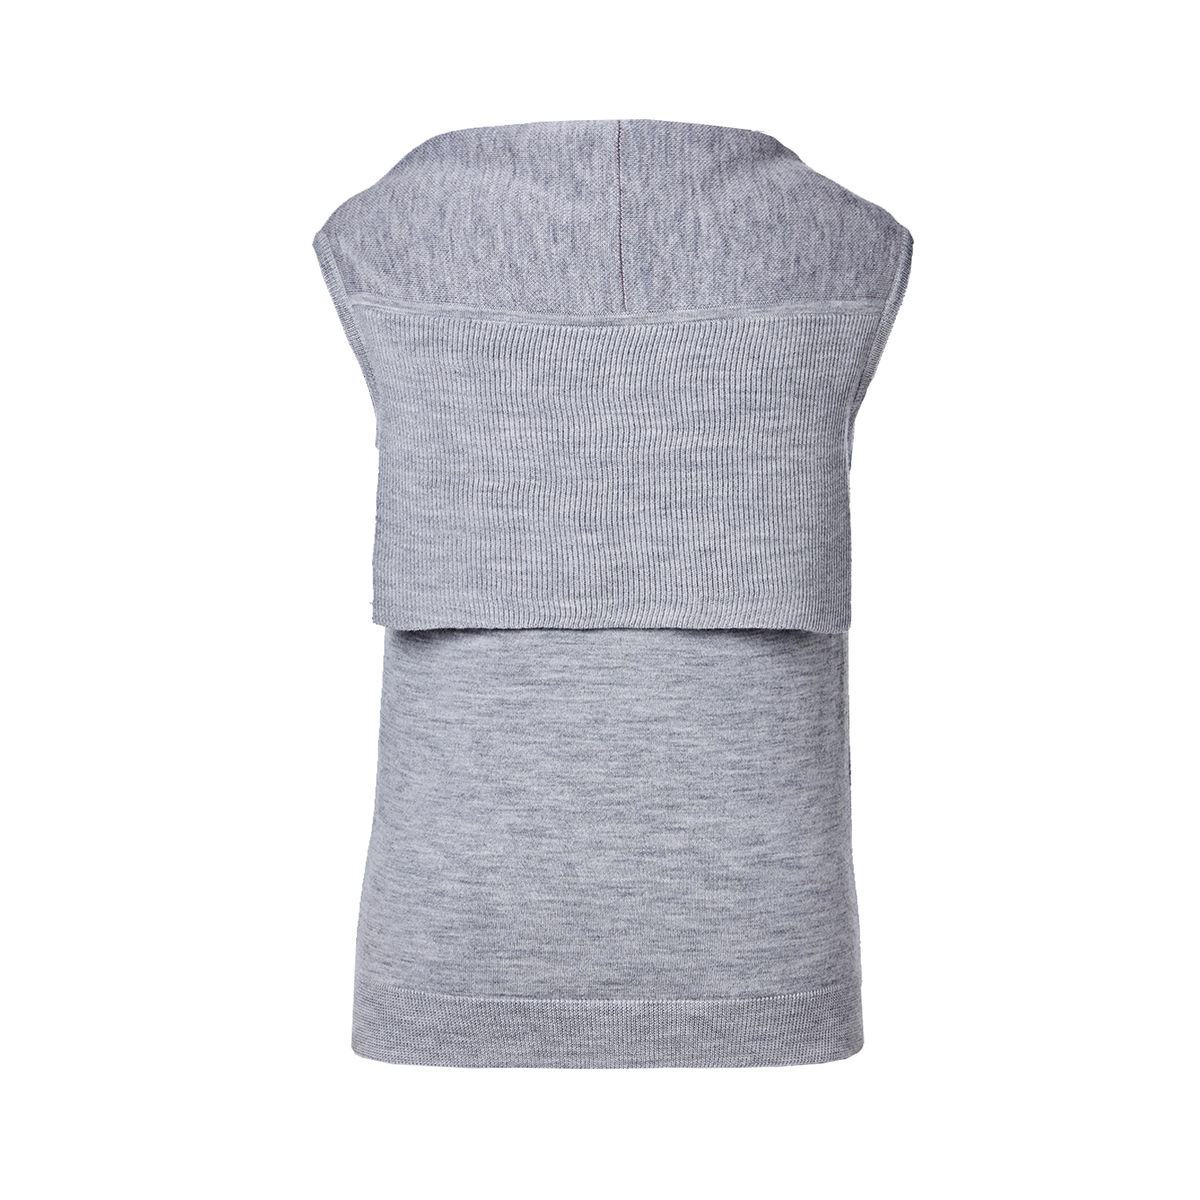 'Bonne Chance' Vest w/back flap -Grey - product images  of